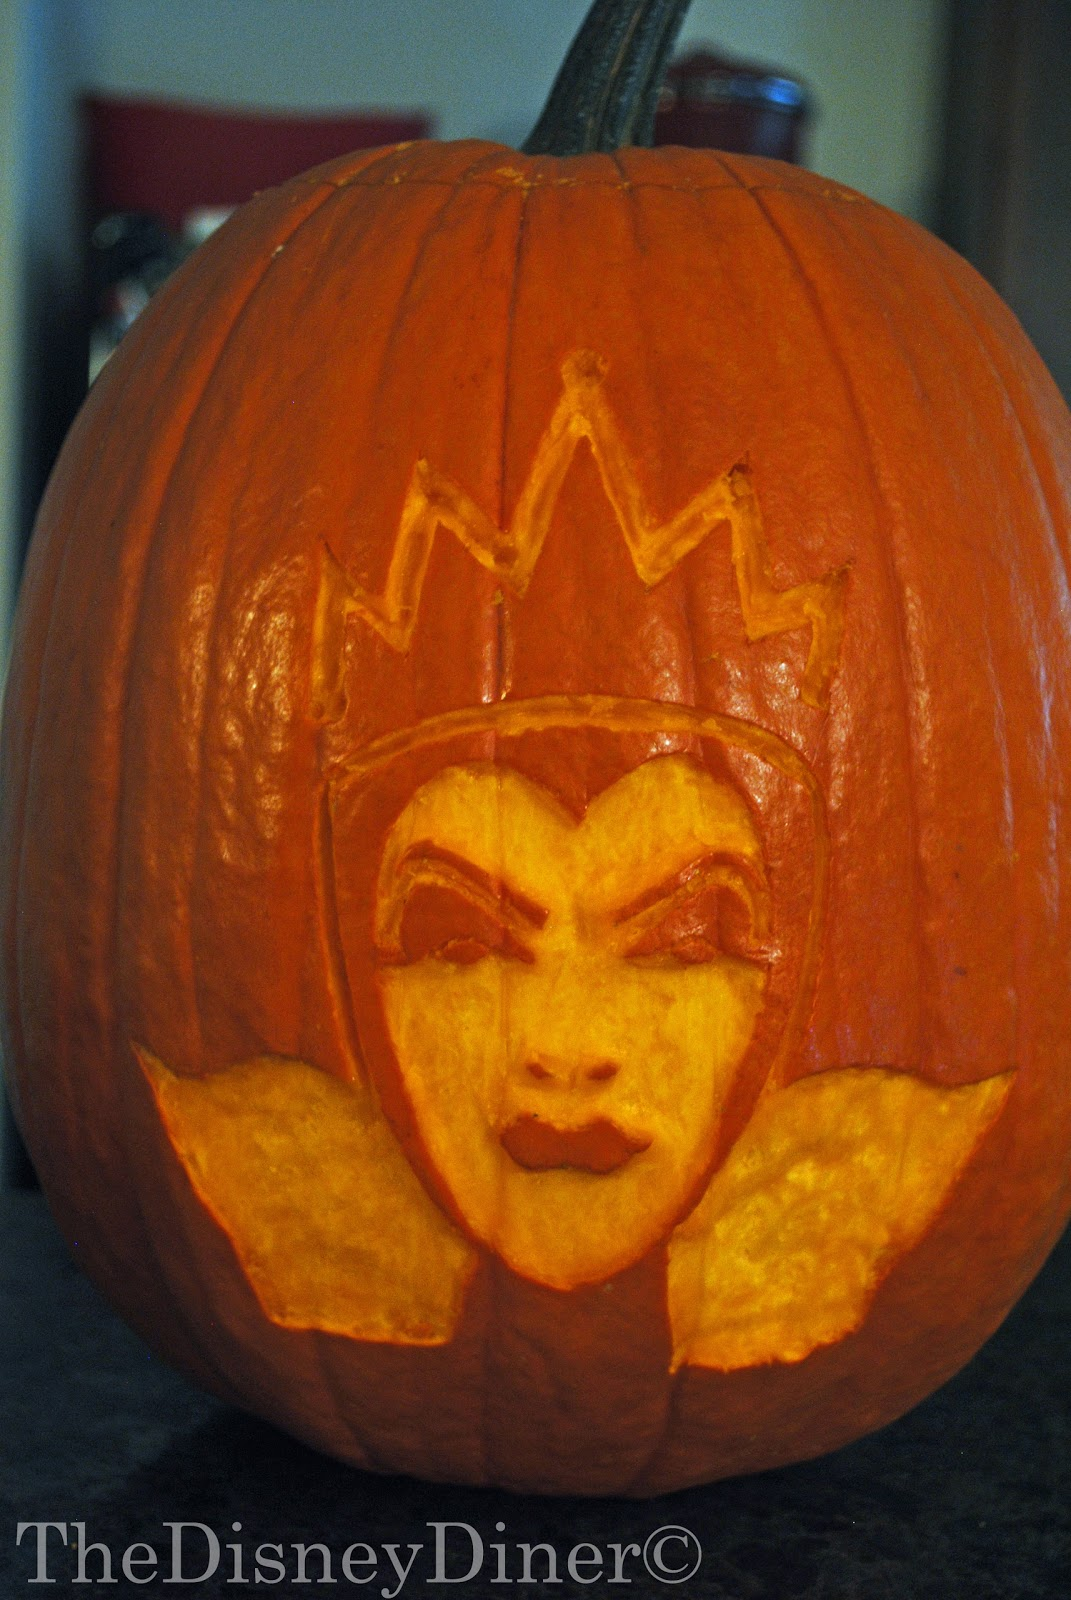 The disney diner evil queen pumpkin carving template